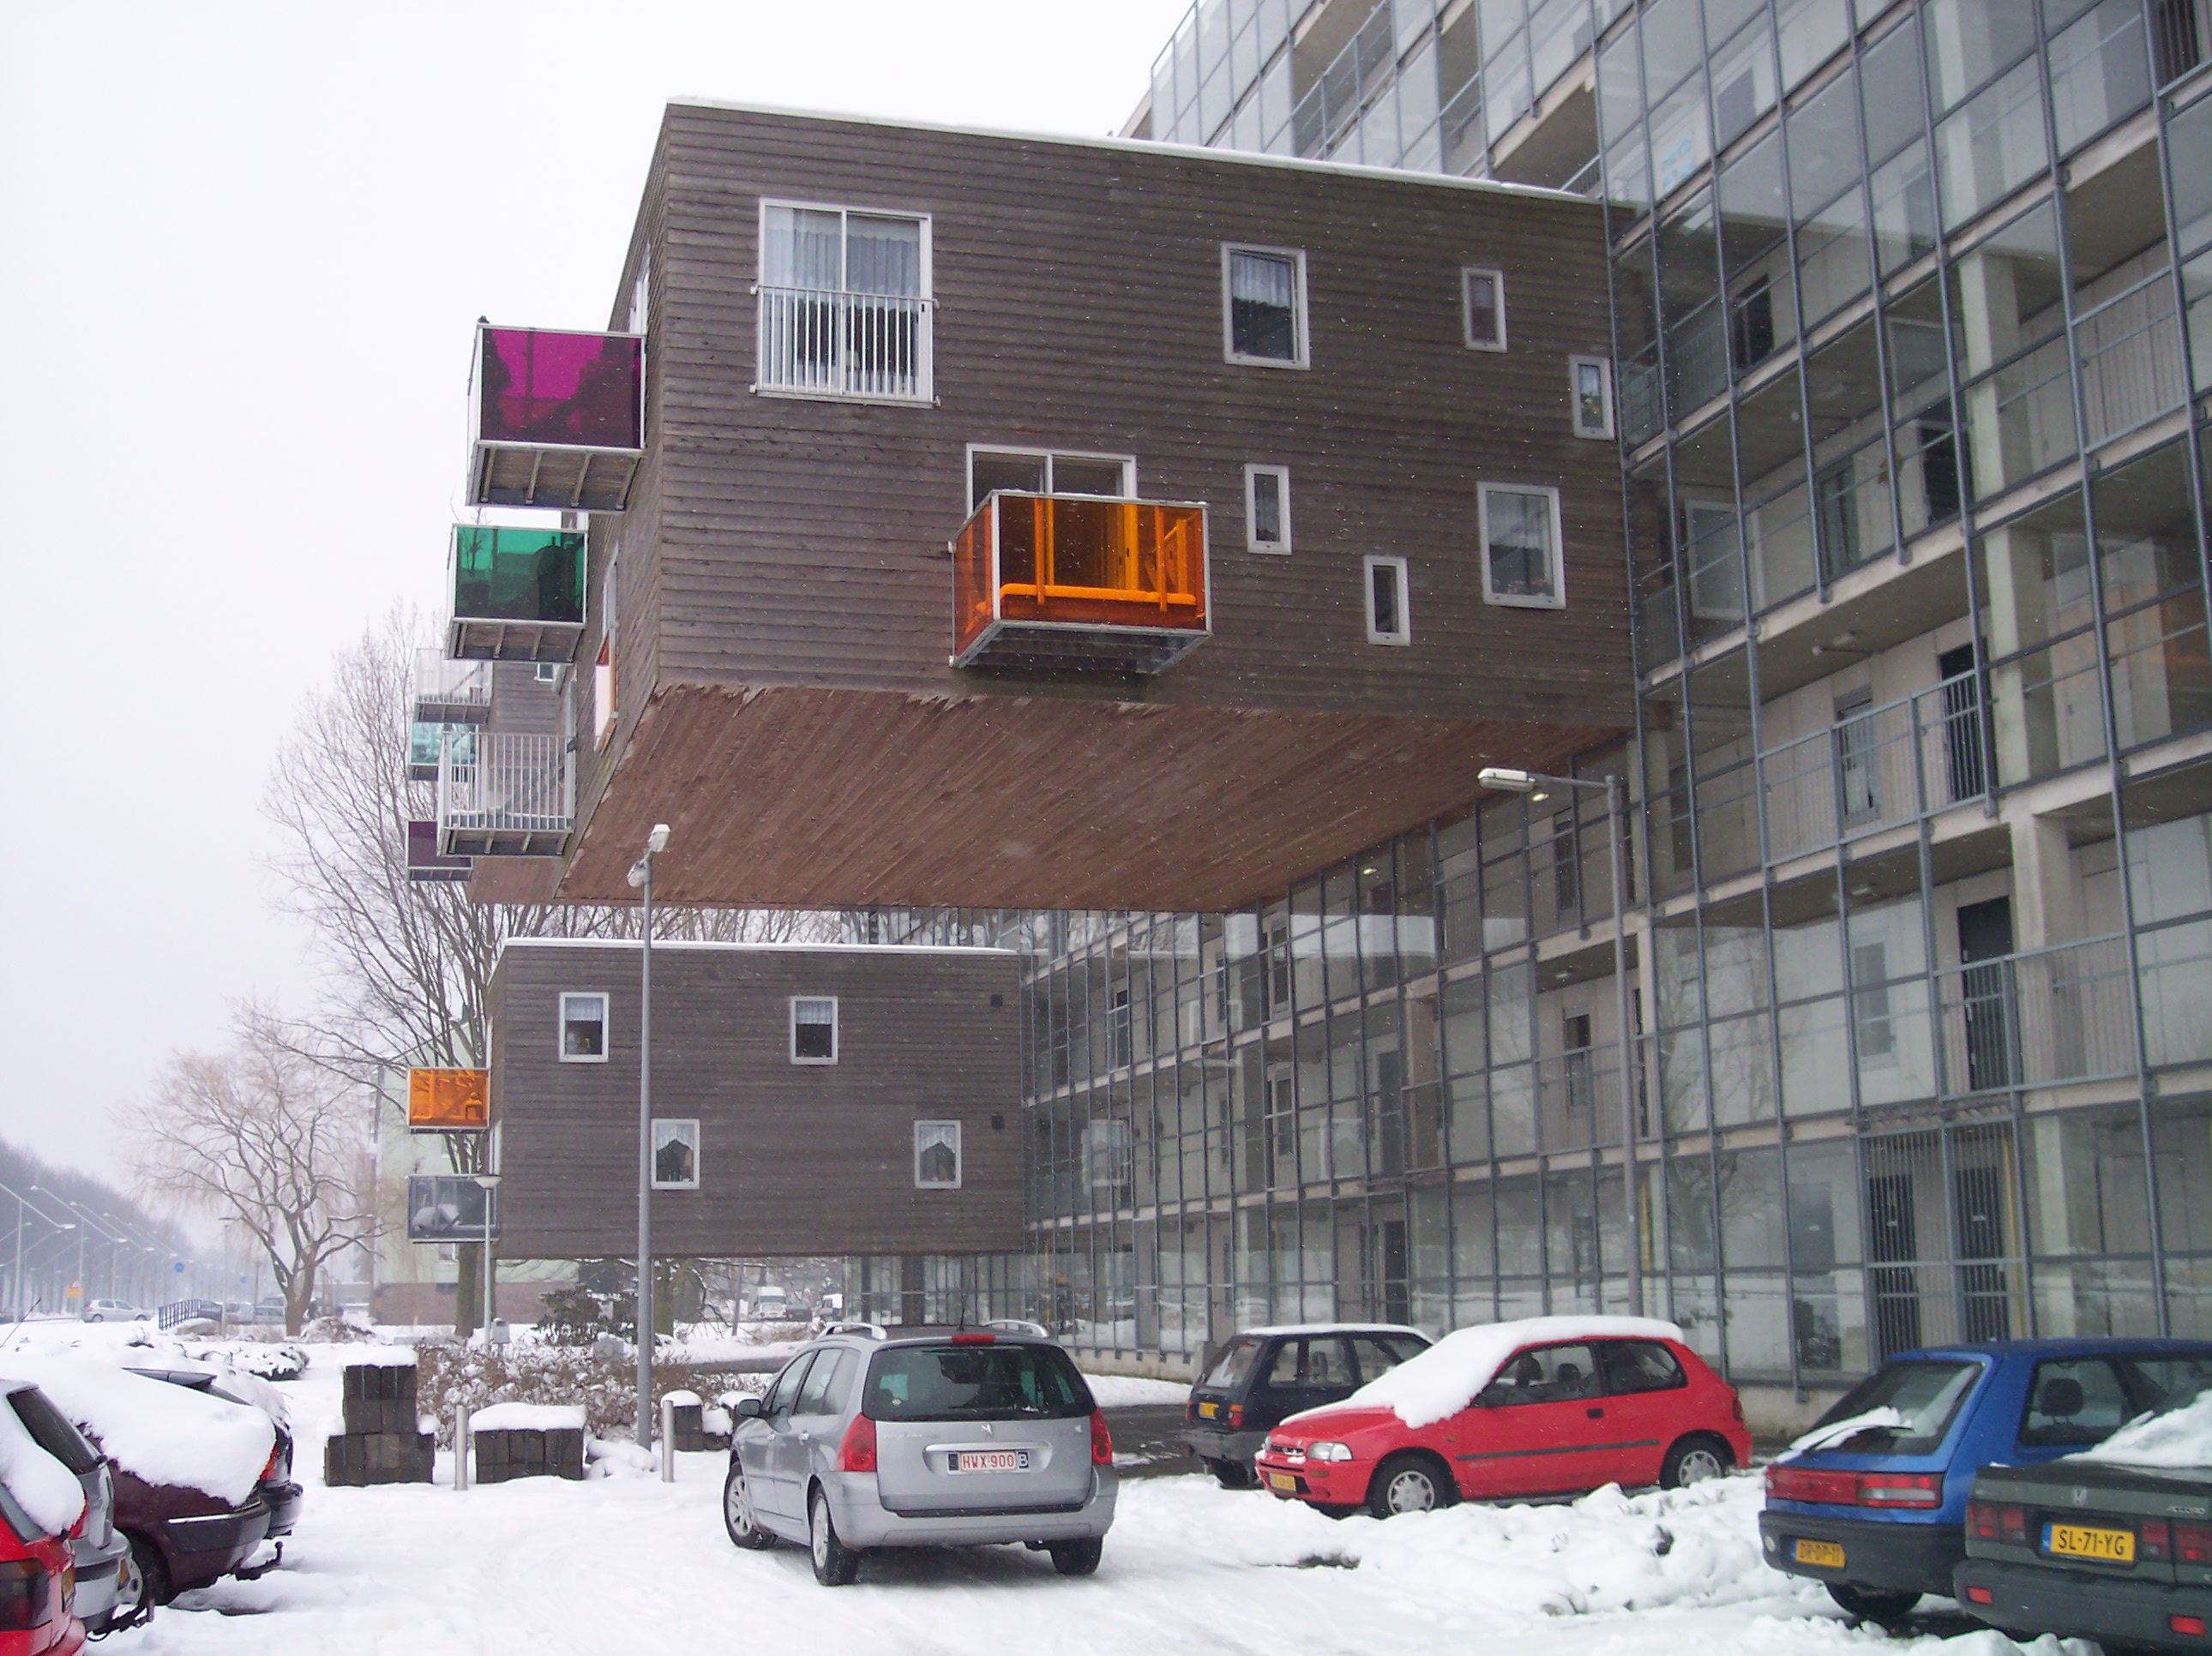 dario houses sticking out modern architecture design above the street snow cold winter